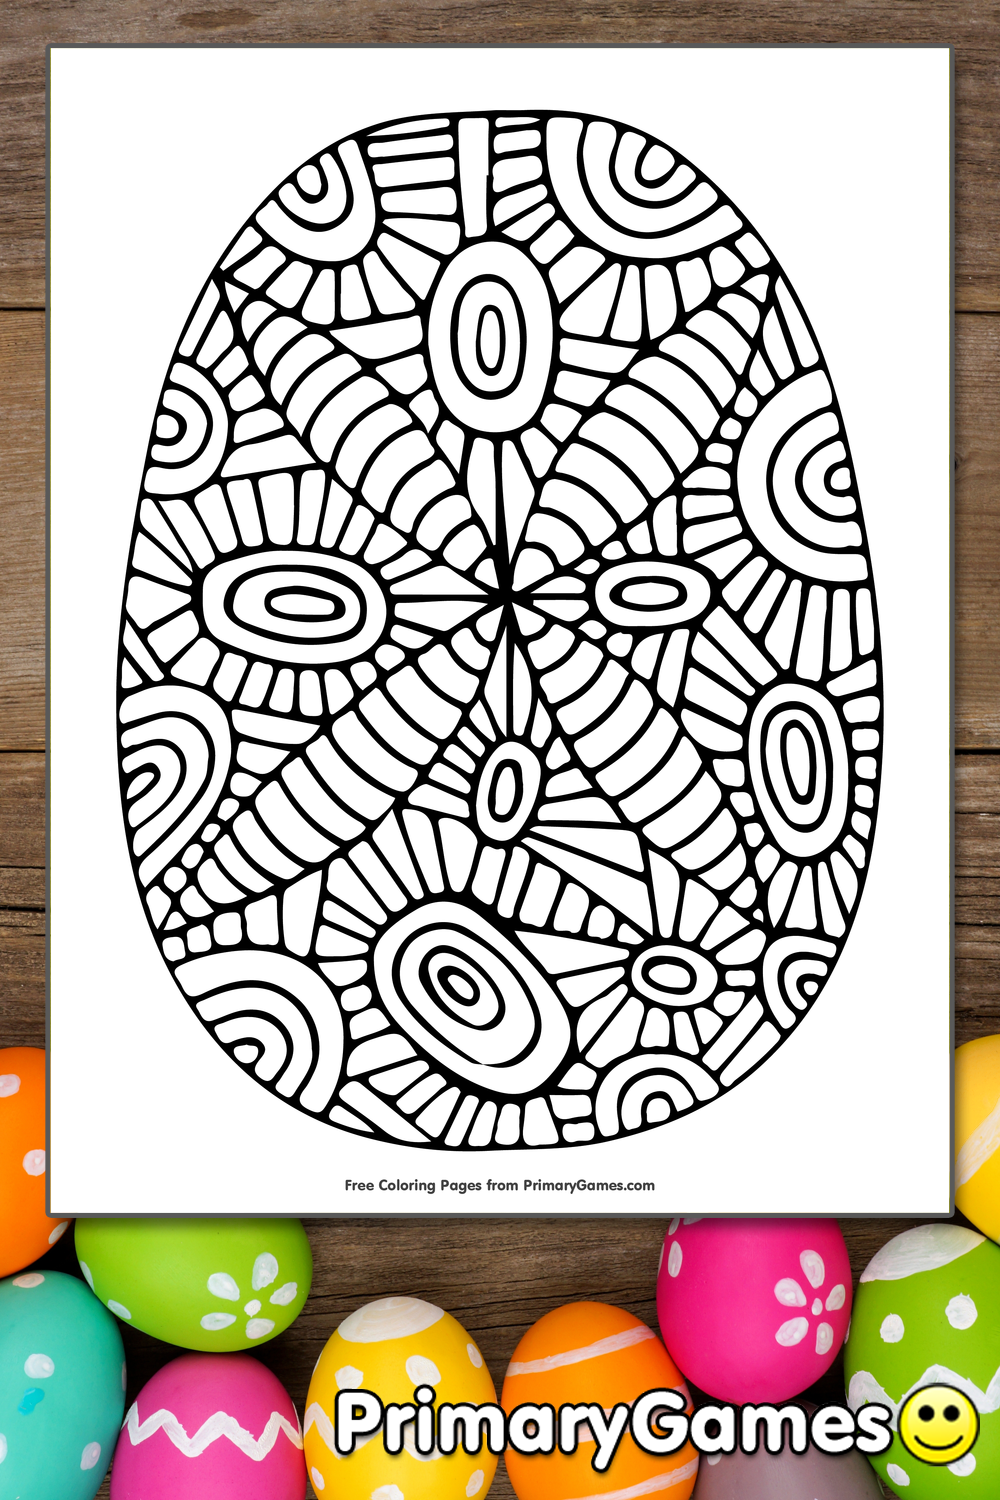 primary games coloring pages - photo#36